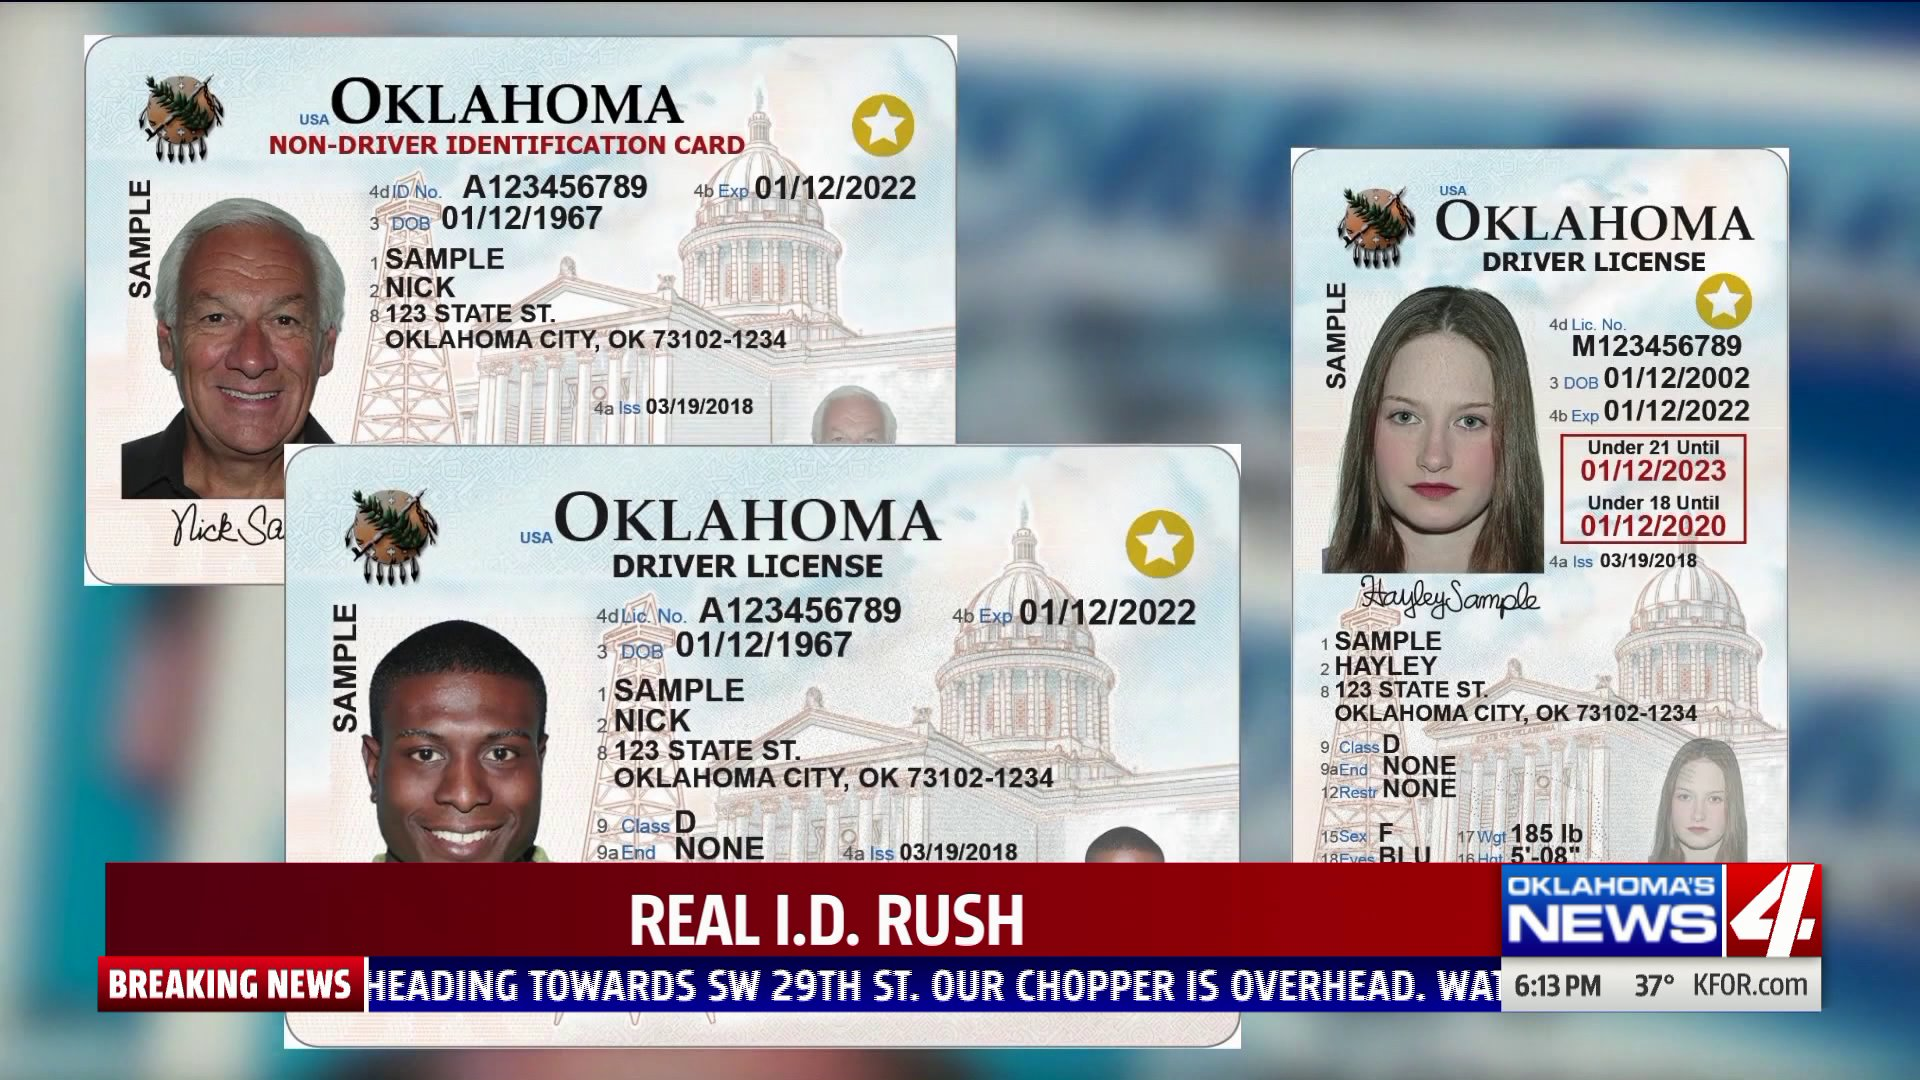 With only a third of Americans equipped with Real ID, concerns are mounting ahead of the looming federal Oct. 1 deadline. In Oklahoma, however, state officials are confident they can get it done.